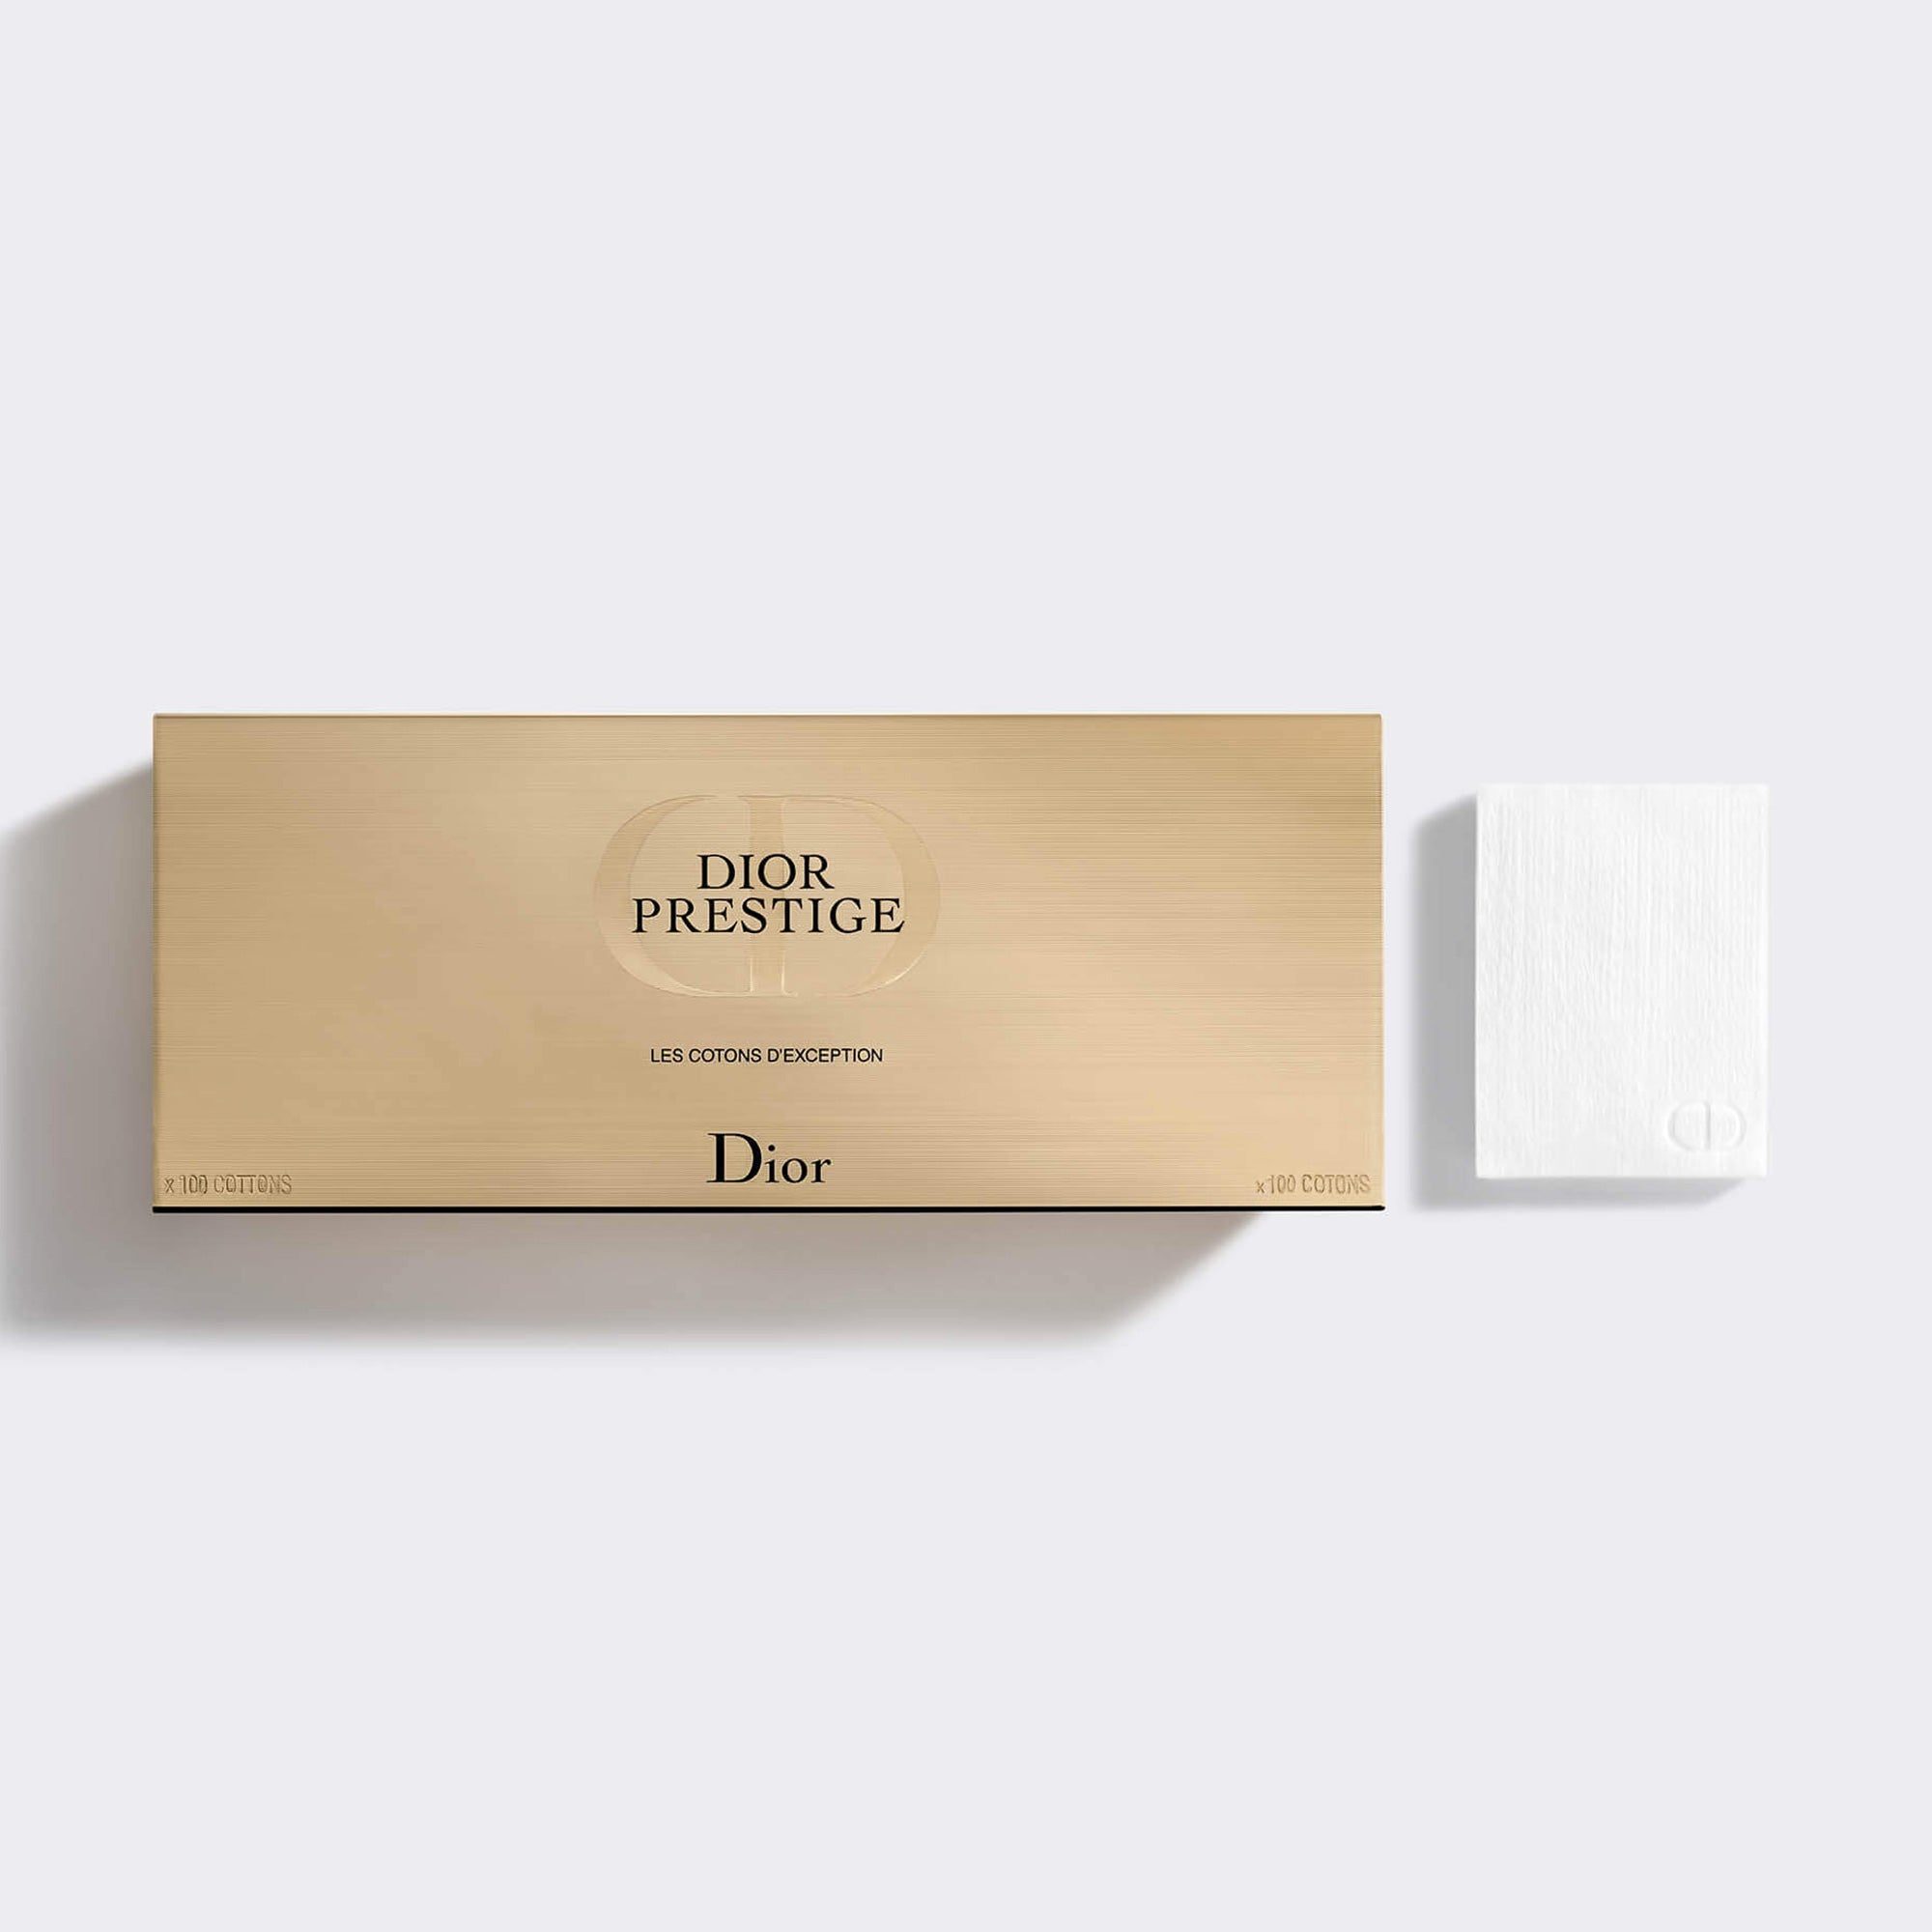 DIOR PRESTIGE ~ The Exceptional Cotton Pads - 100% Natural Cotton Fibers